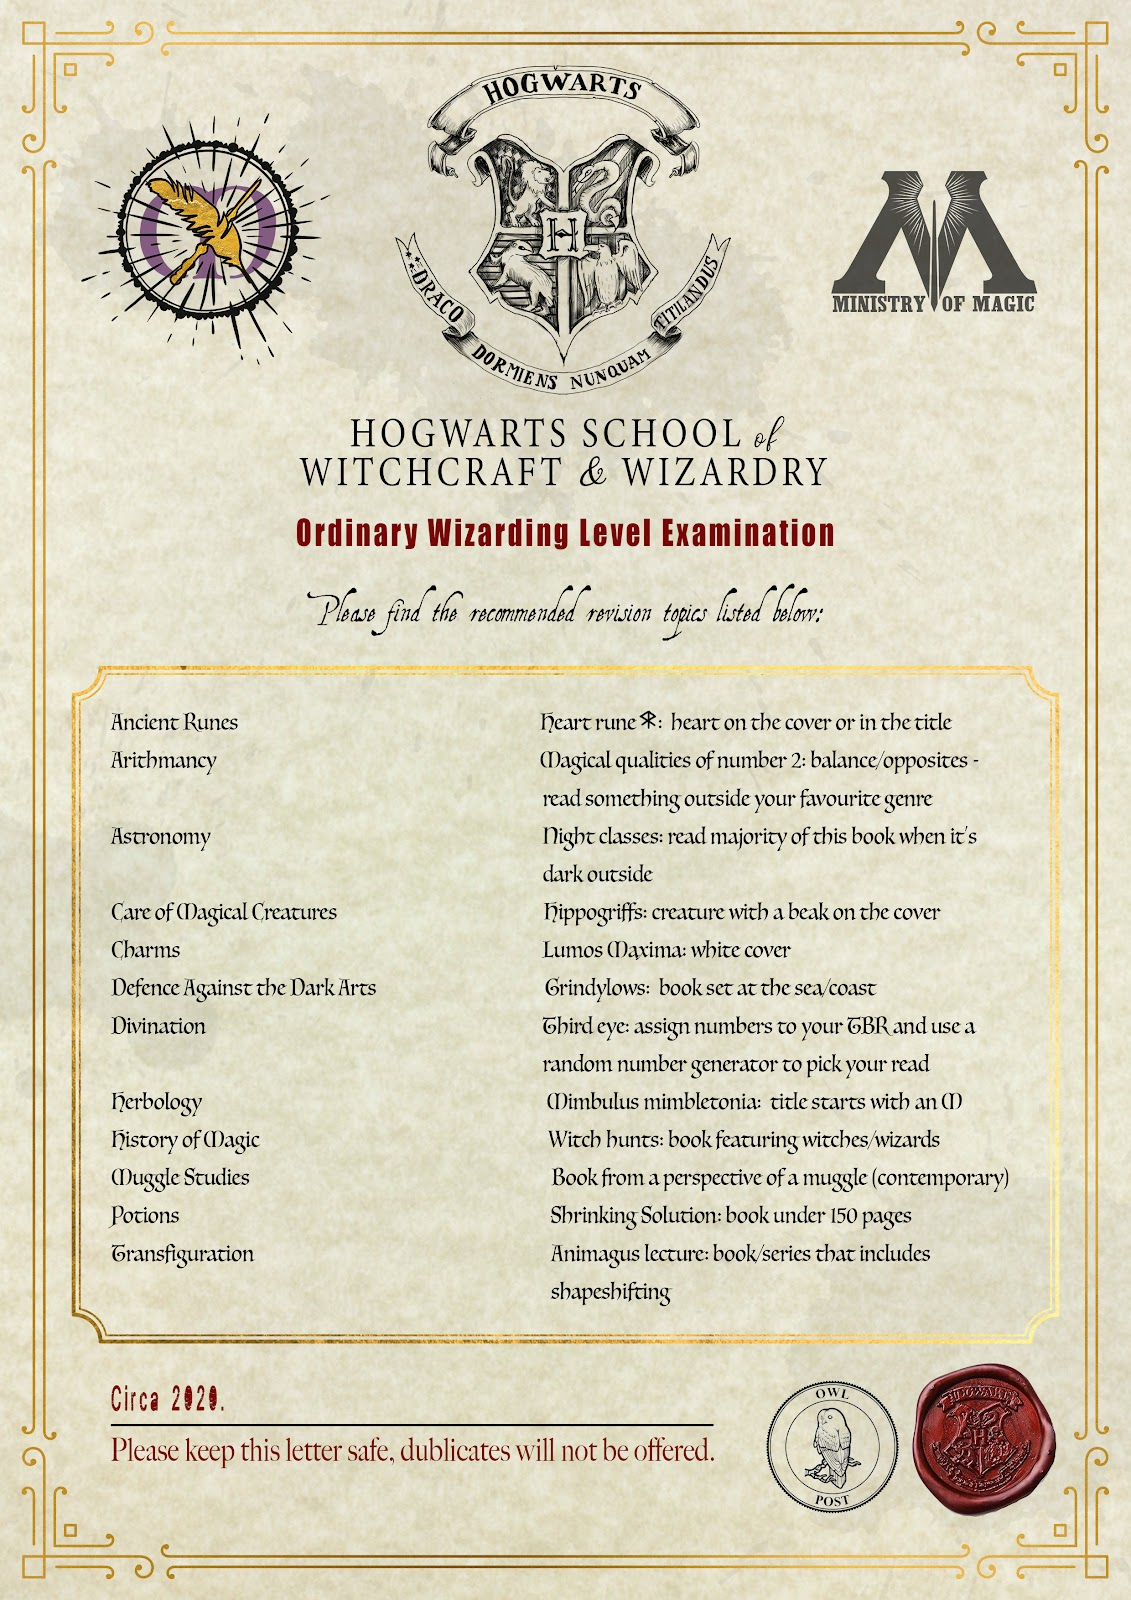 paperwork from Hogwarts listing the requirements of the OWLS exam